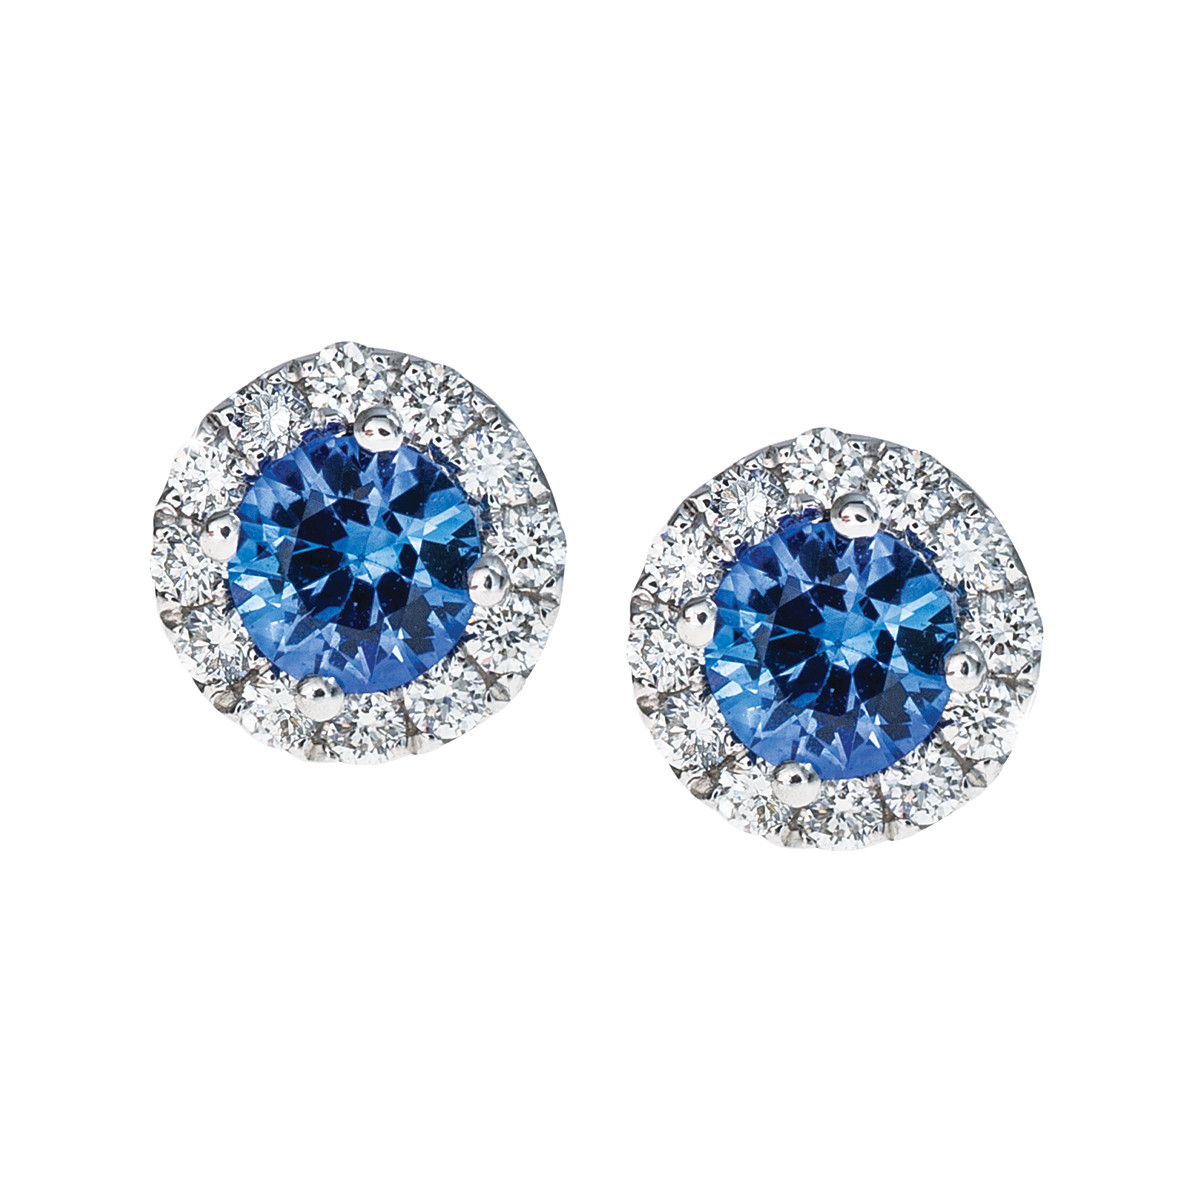 0.62 CTW Blue Sapphire & Diamond Stud Earrings